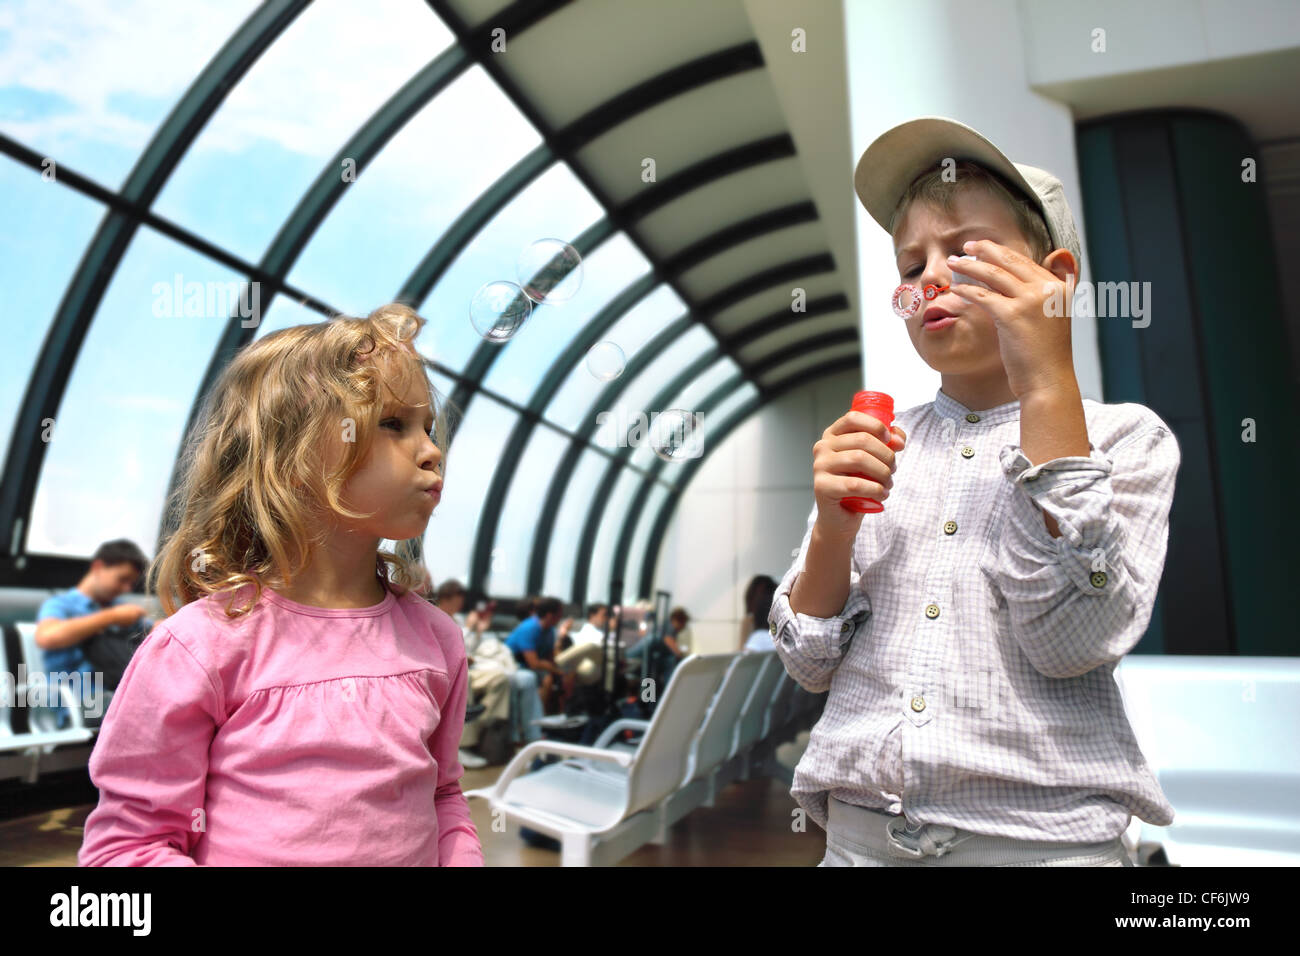 Blondy little boy and girl blow up soap bubbles inside airport - Stock Image